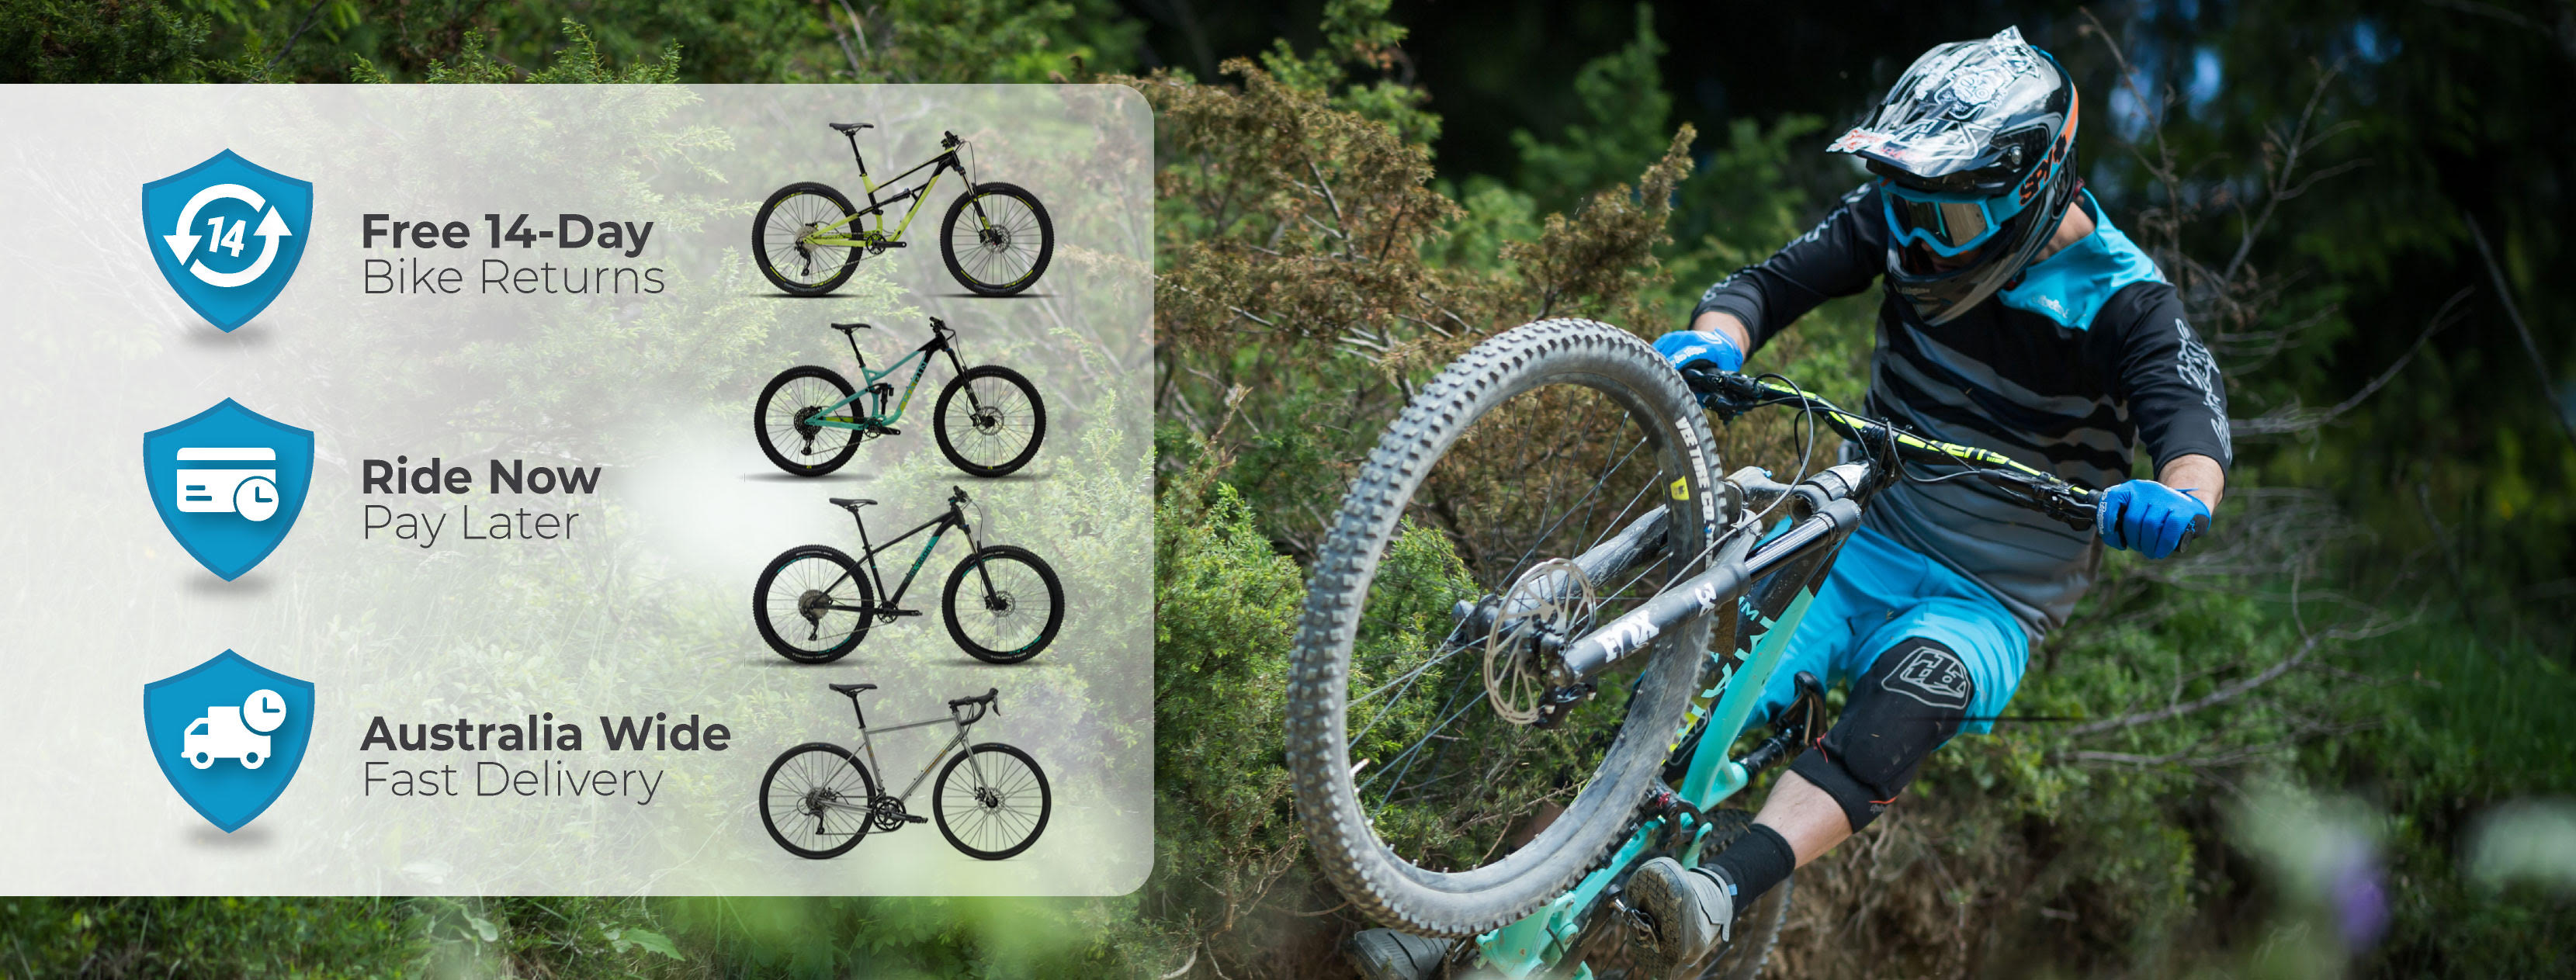 Bicycles Online up to 40% OFF on sale bikes and parts